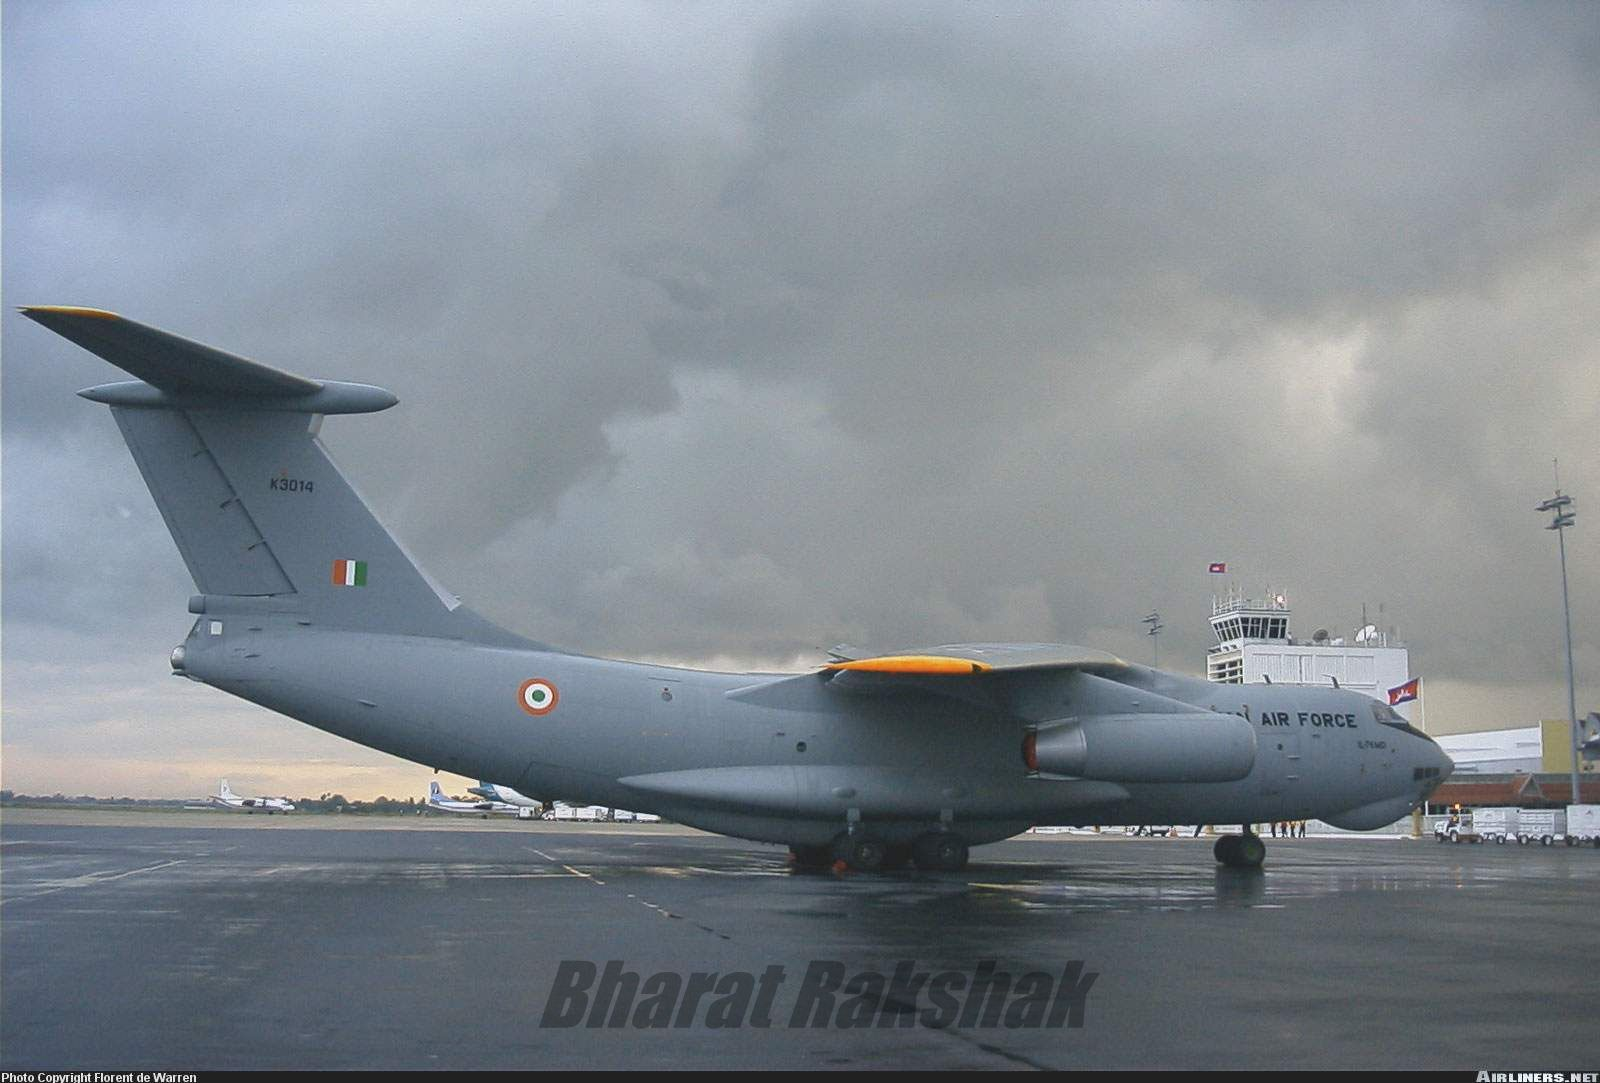 Il-76 [K3014] at Palam international airport.